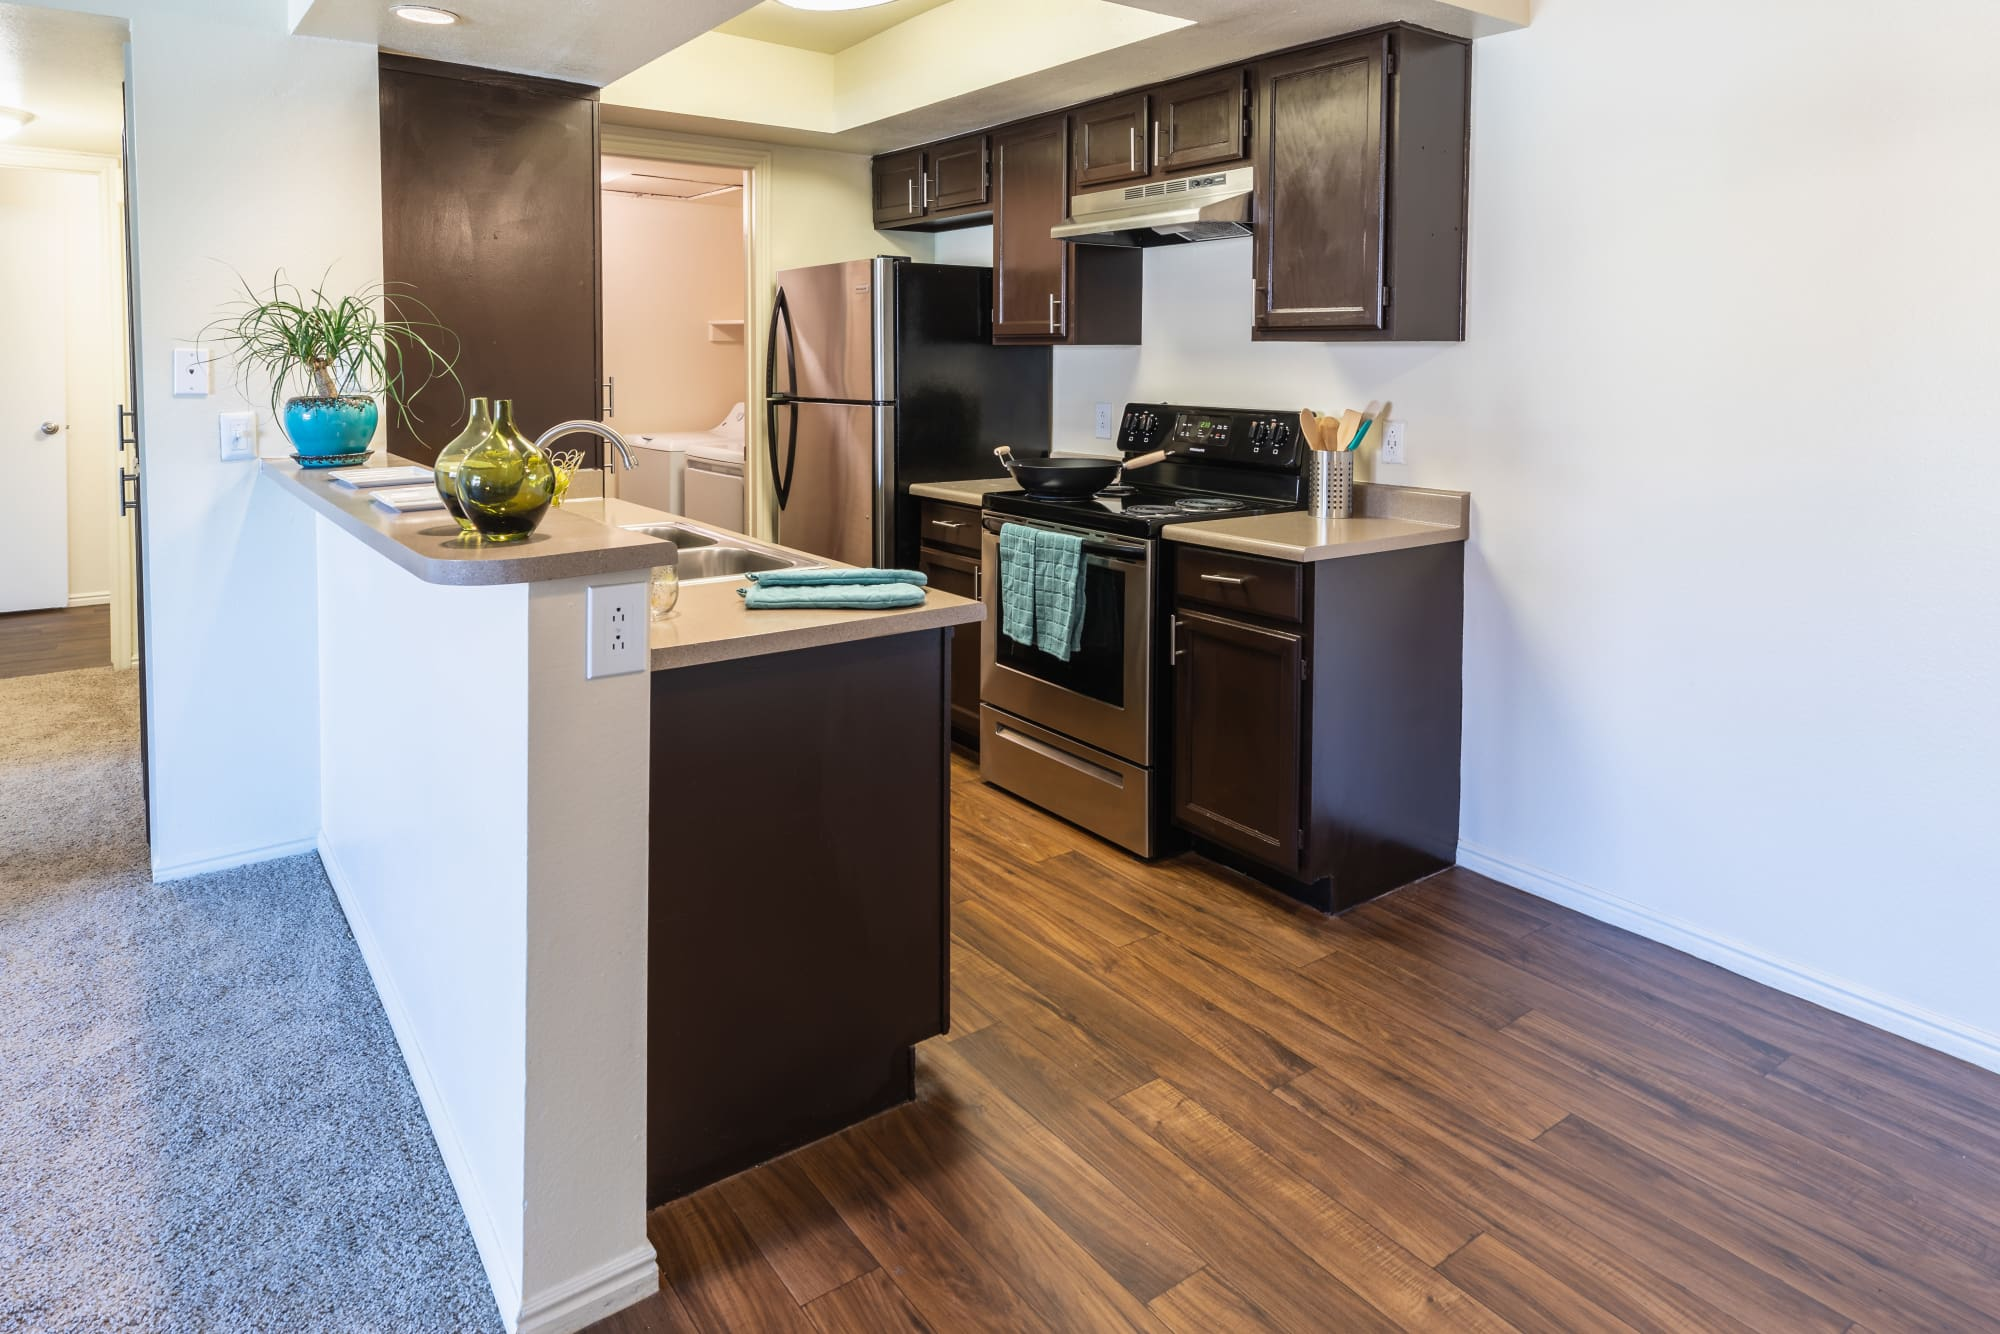 Fully Equipped Renovated Brown Kitchen and Dining Room with Stainless Steel Appliances at Shadowbrook Apartments in West Valley City, UT